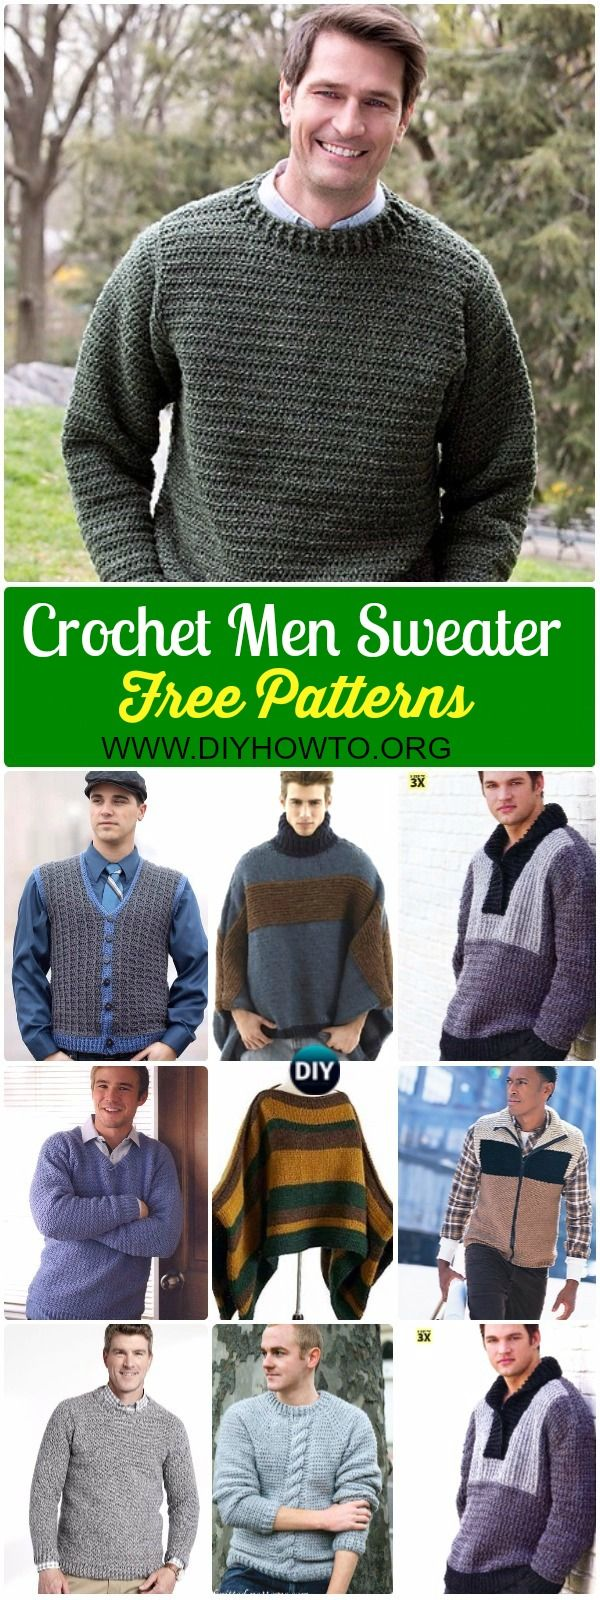 Collection of Crochet Men Sweater Free Patterns & Tutorials: Crochet Man Vest, Cardigan, Pullover sweater, poncho and more via @diyhowto